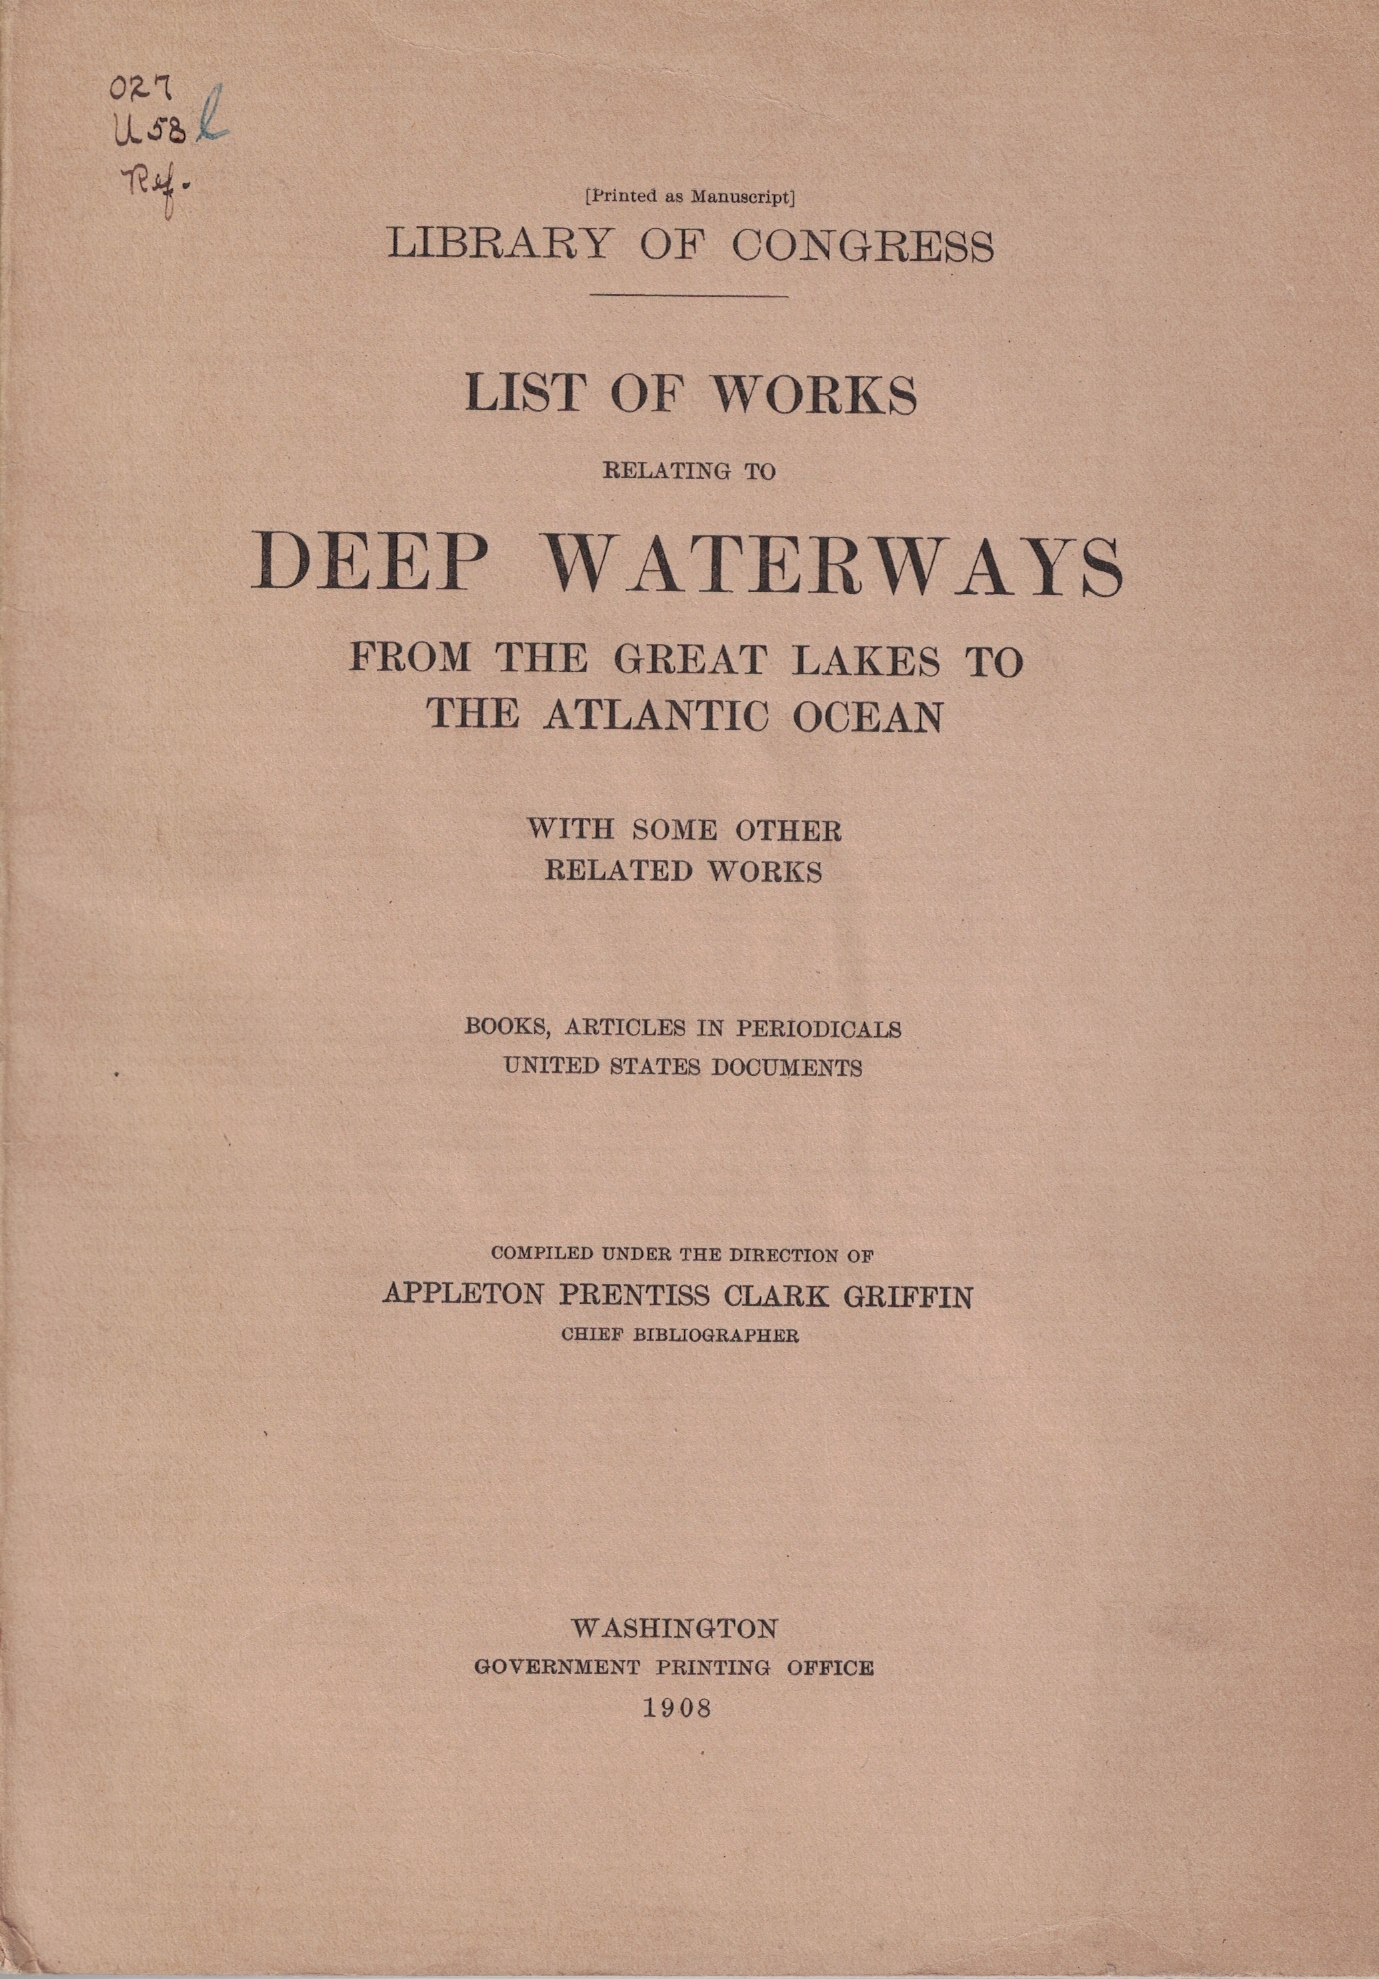 Image for List of Works Relating to Deep Waterways from the Great Lakes to the Atlantic Ocean, with Some Other Related Works (Library of Congress)